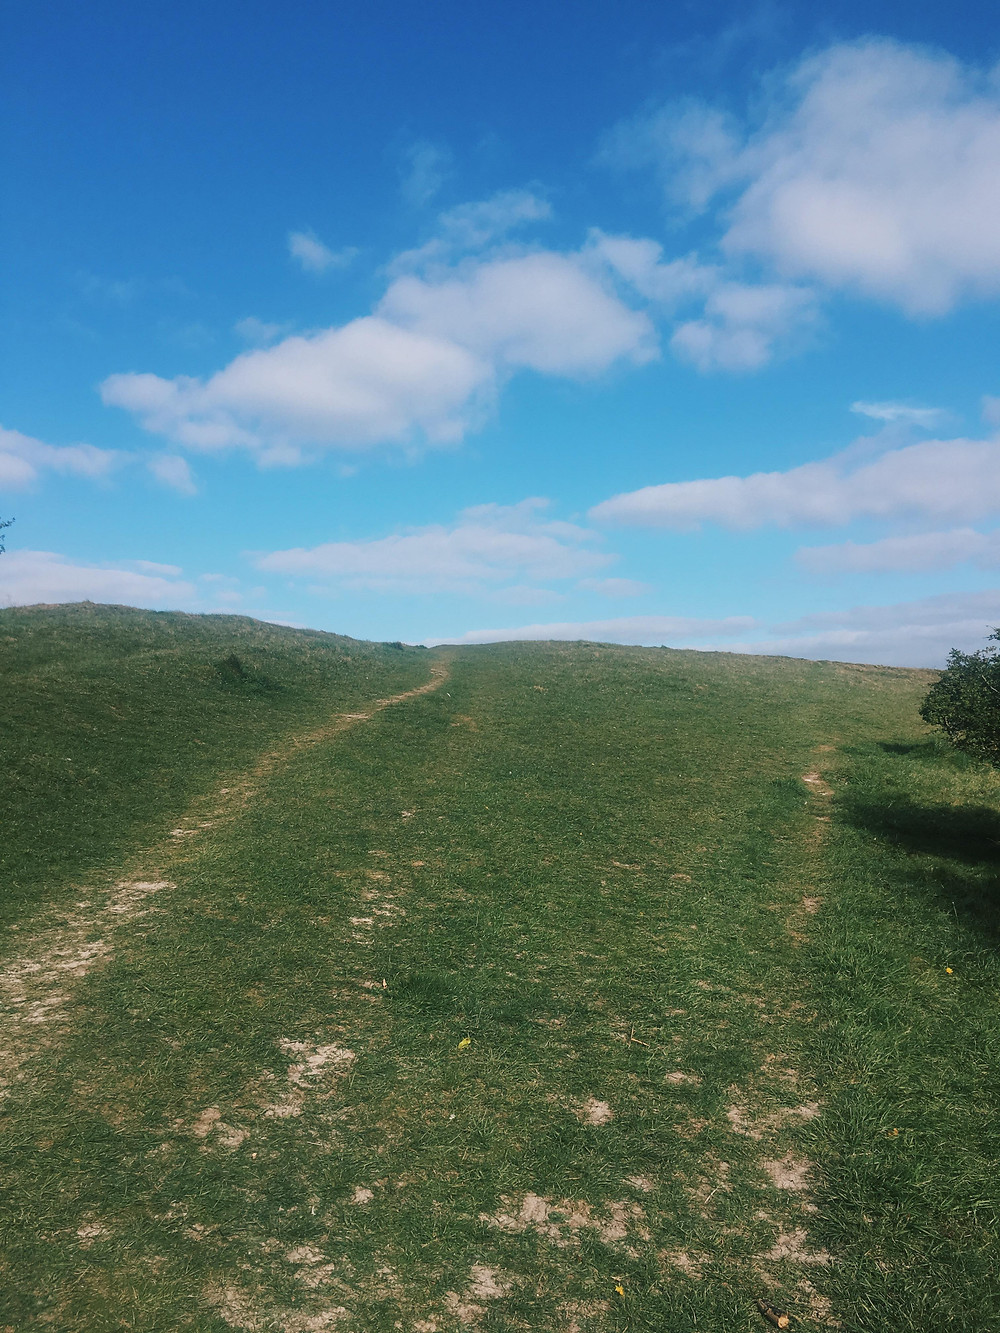 An image of a clear divide between a blue sky and green field with a path through.